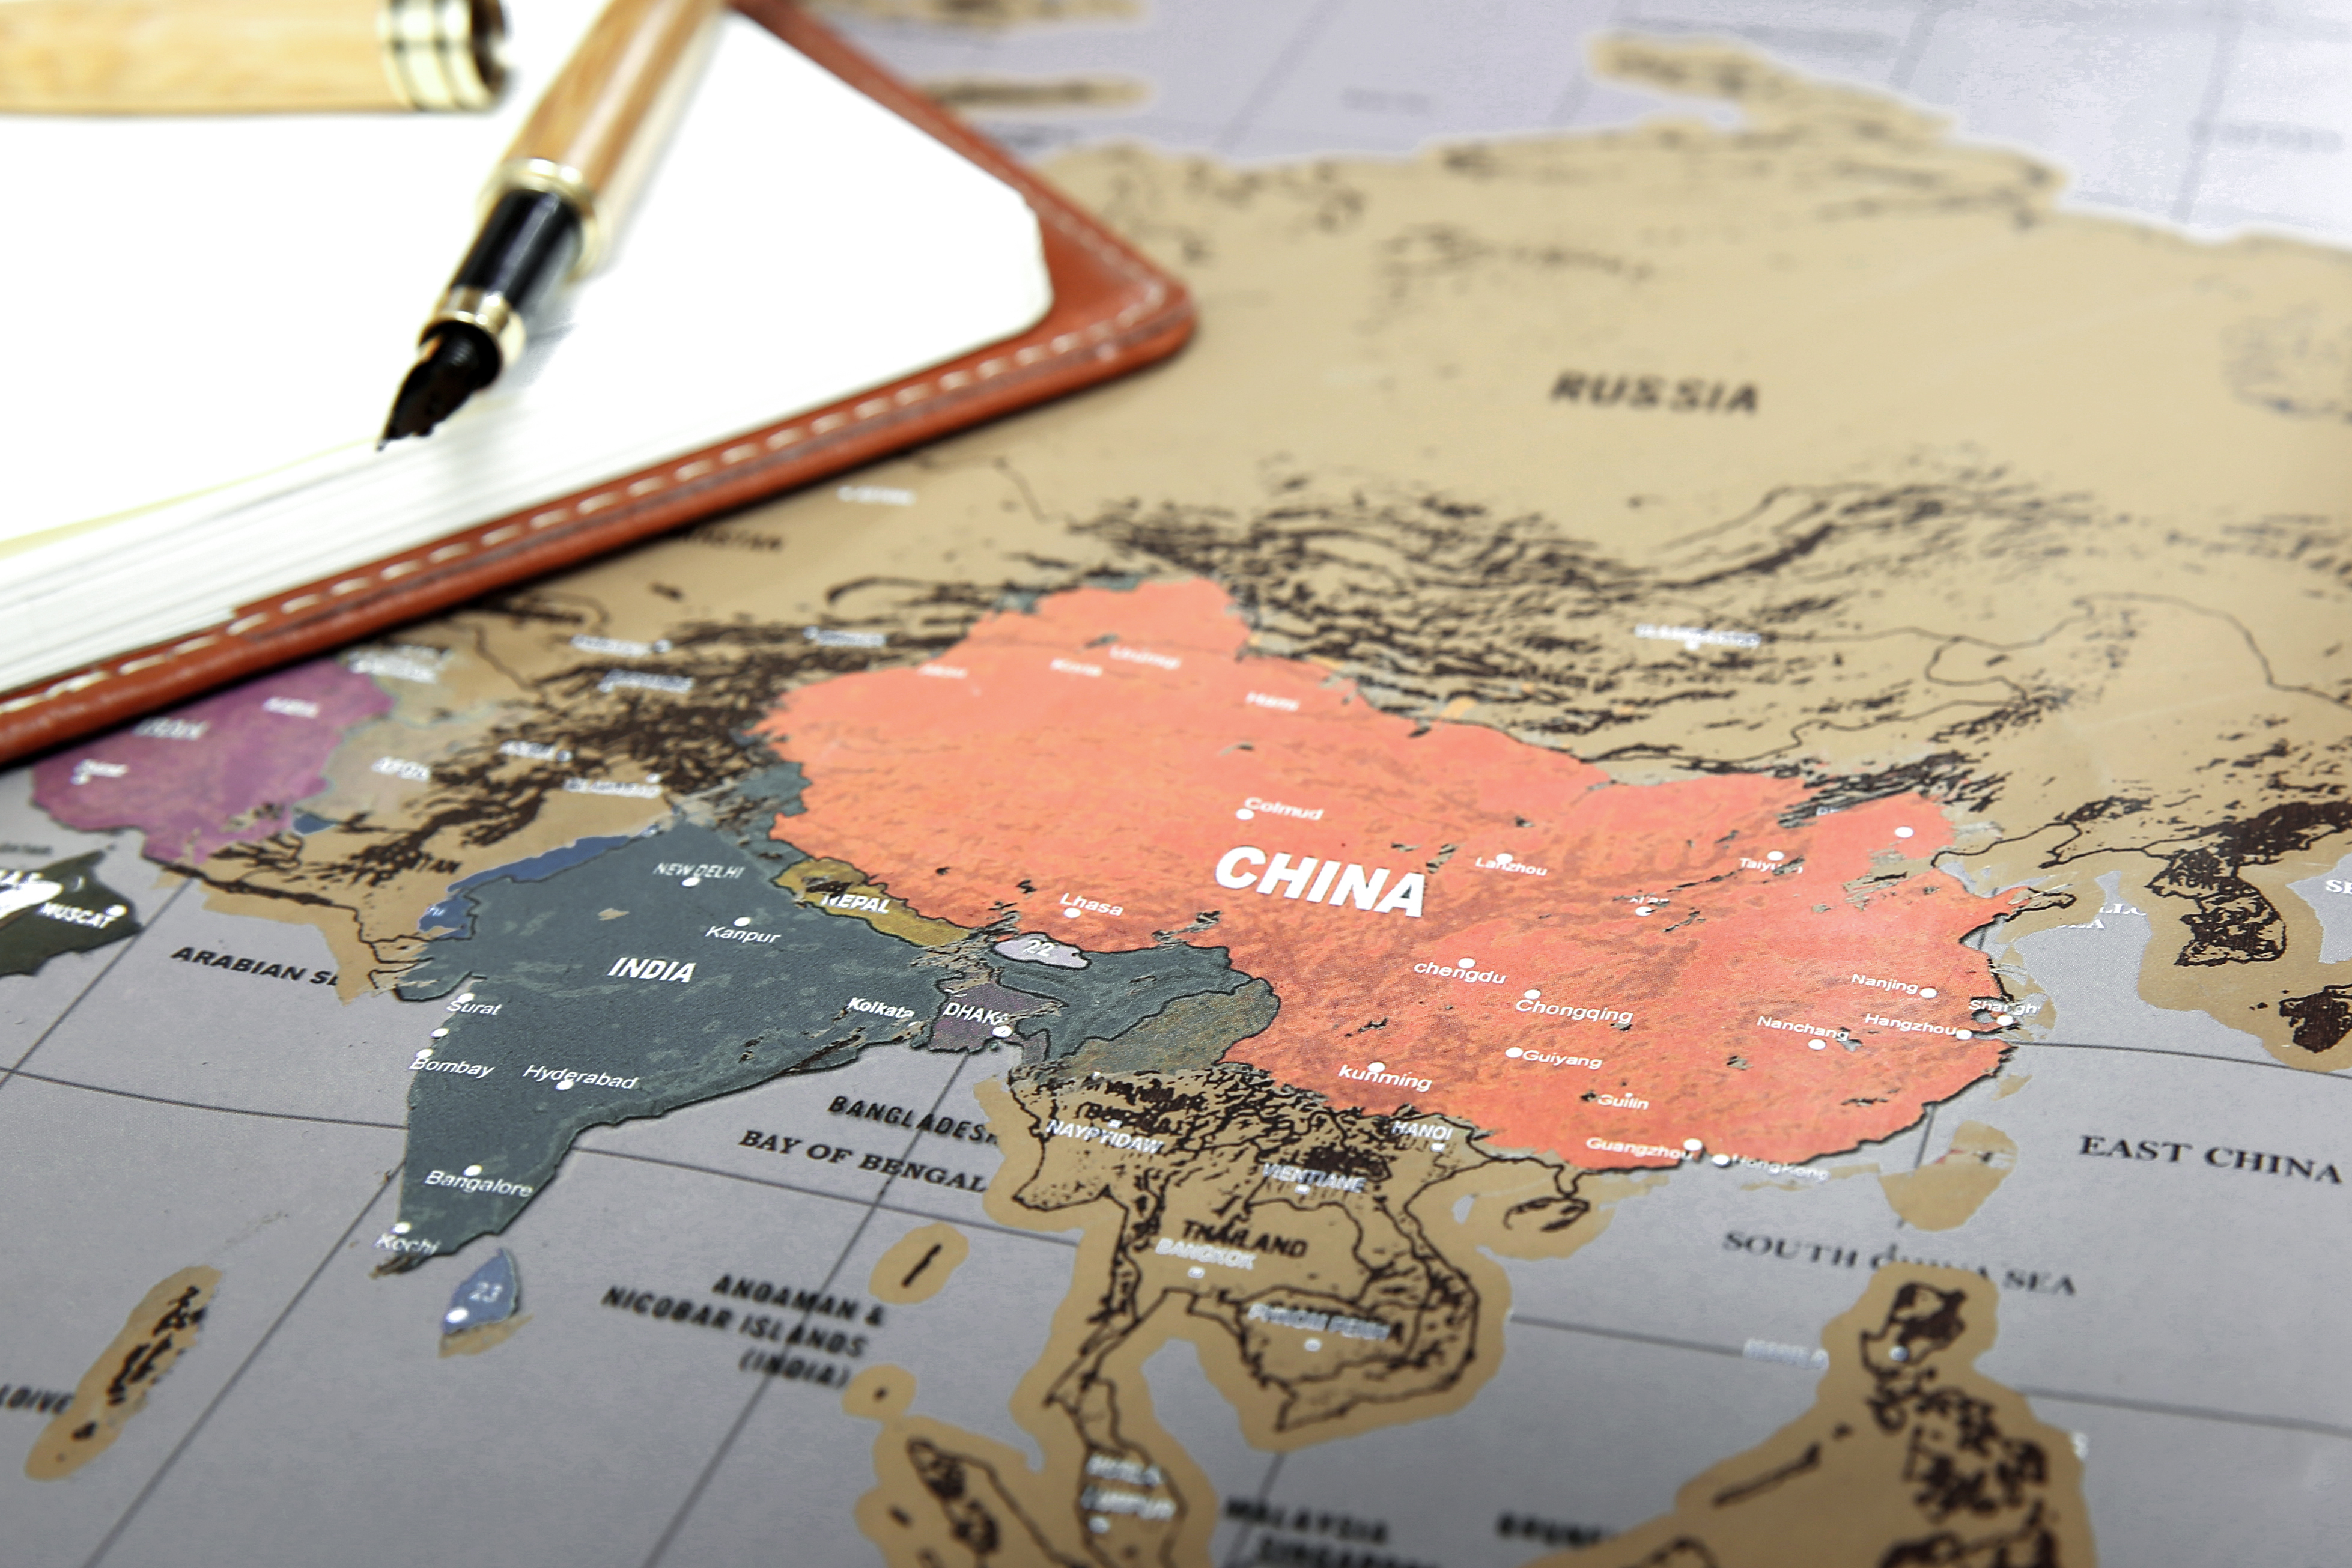 1pc travel edition scratch off world map poster personalized journal the deluxe edition is better wrapped better choice for gift giving map dimensions 582x833cm materialpaper colored aluminum laminate gumiabroncs Images